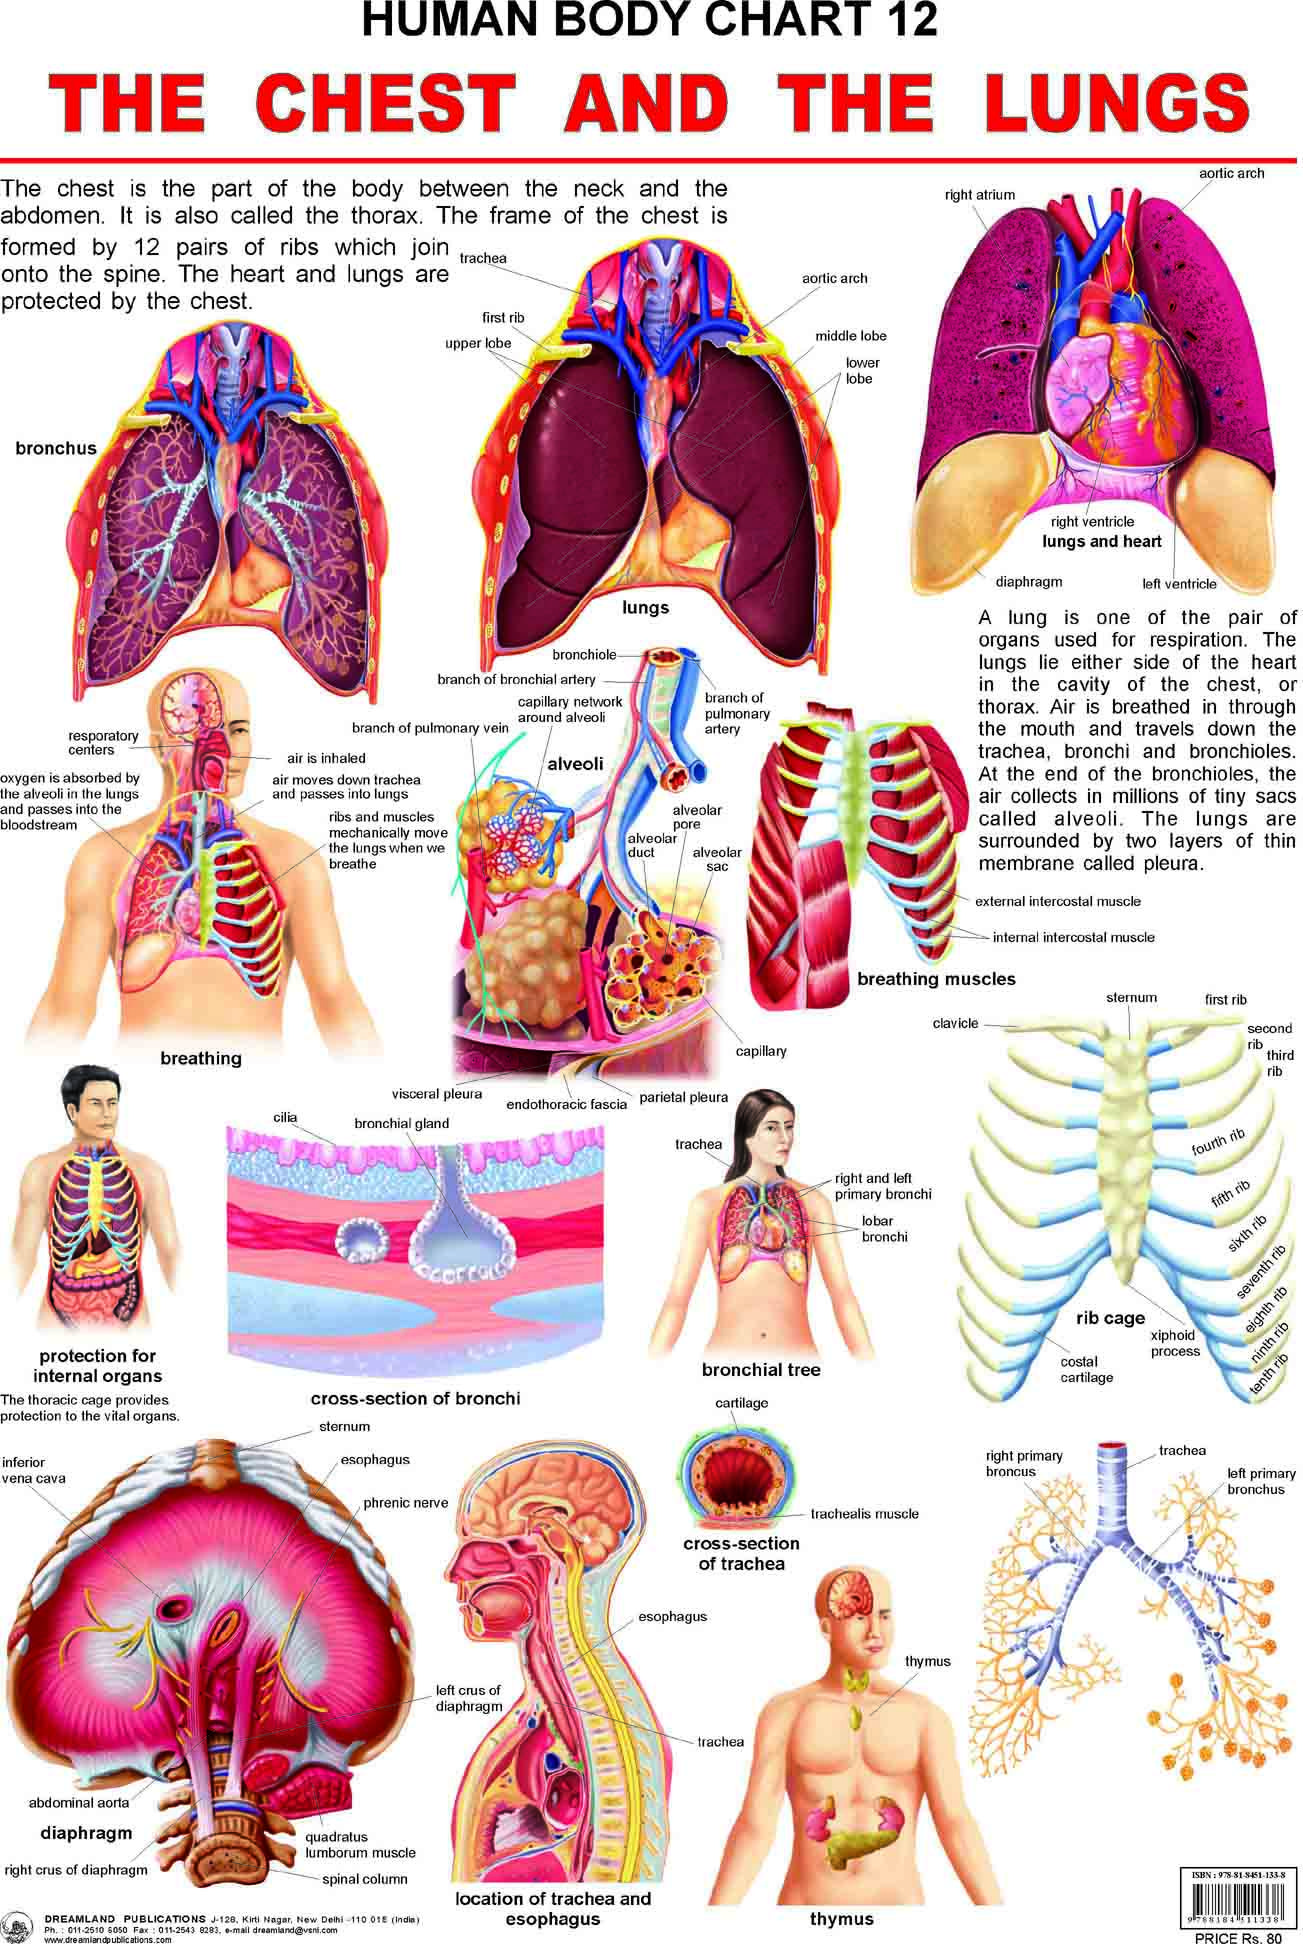 Pin by Pioneers Education on HUMAN BODY CHARTS | Pinterest | Health ...